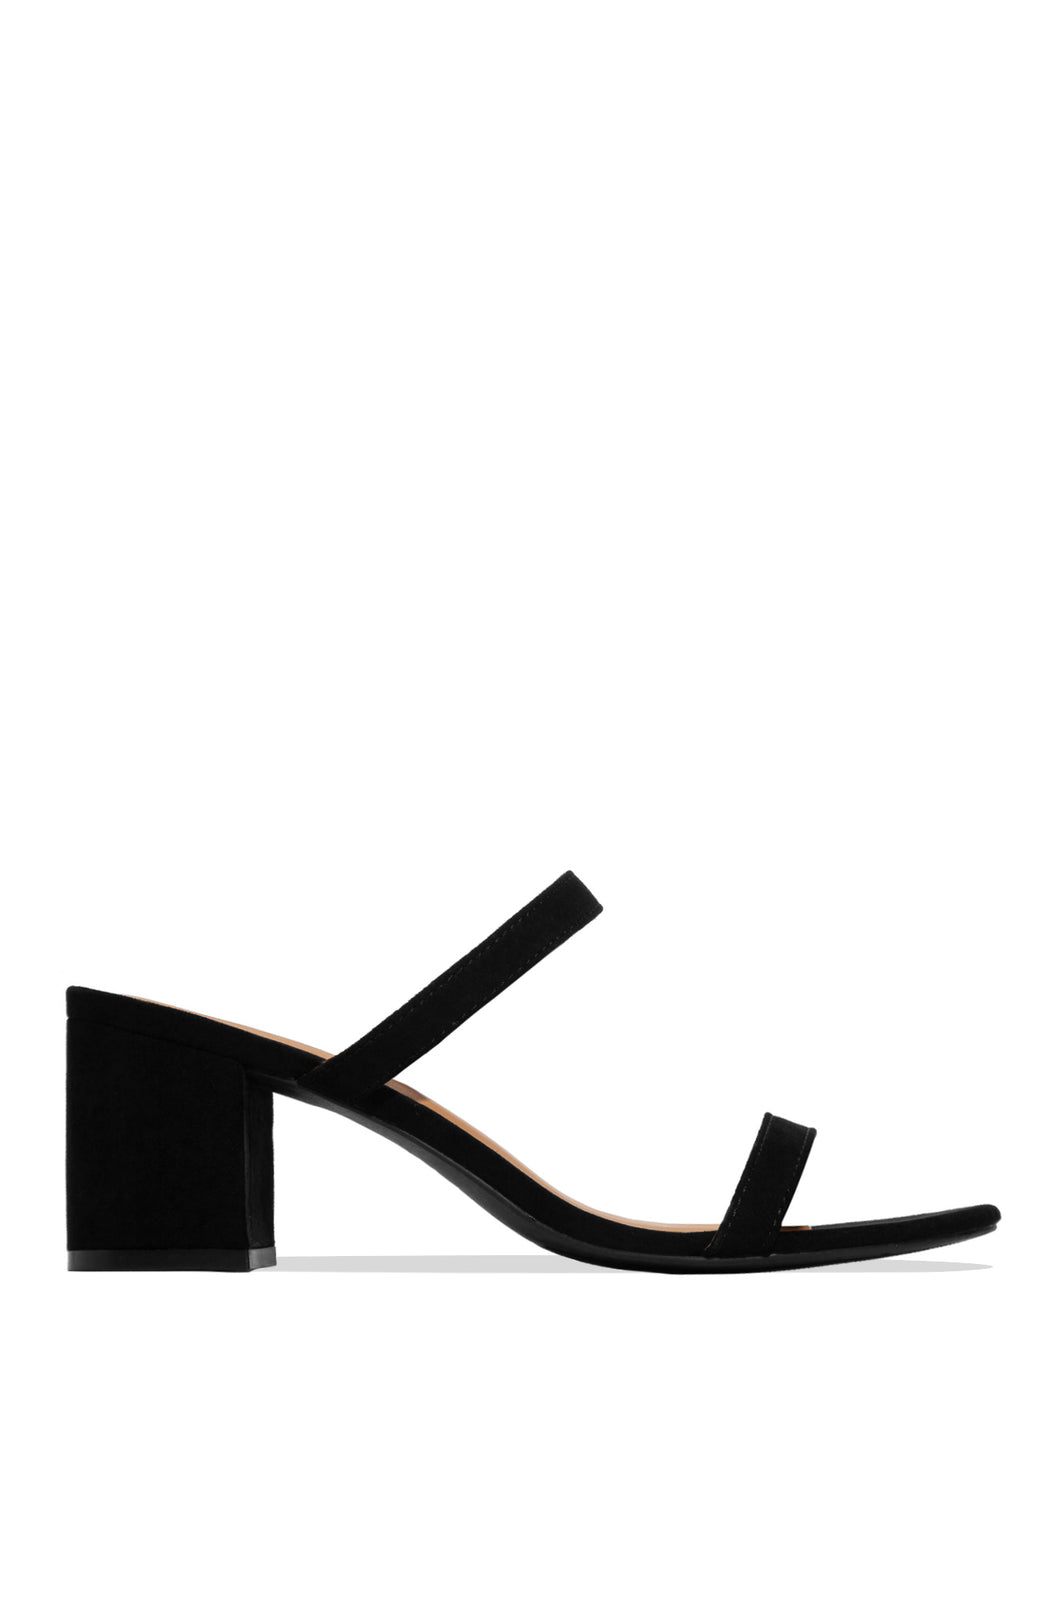 City Chic Mid Heel - Black